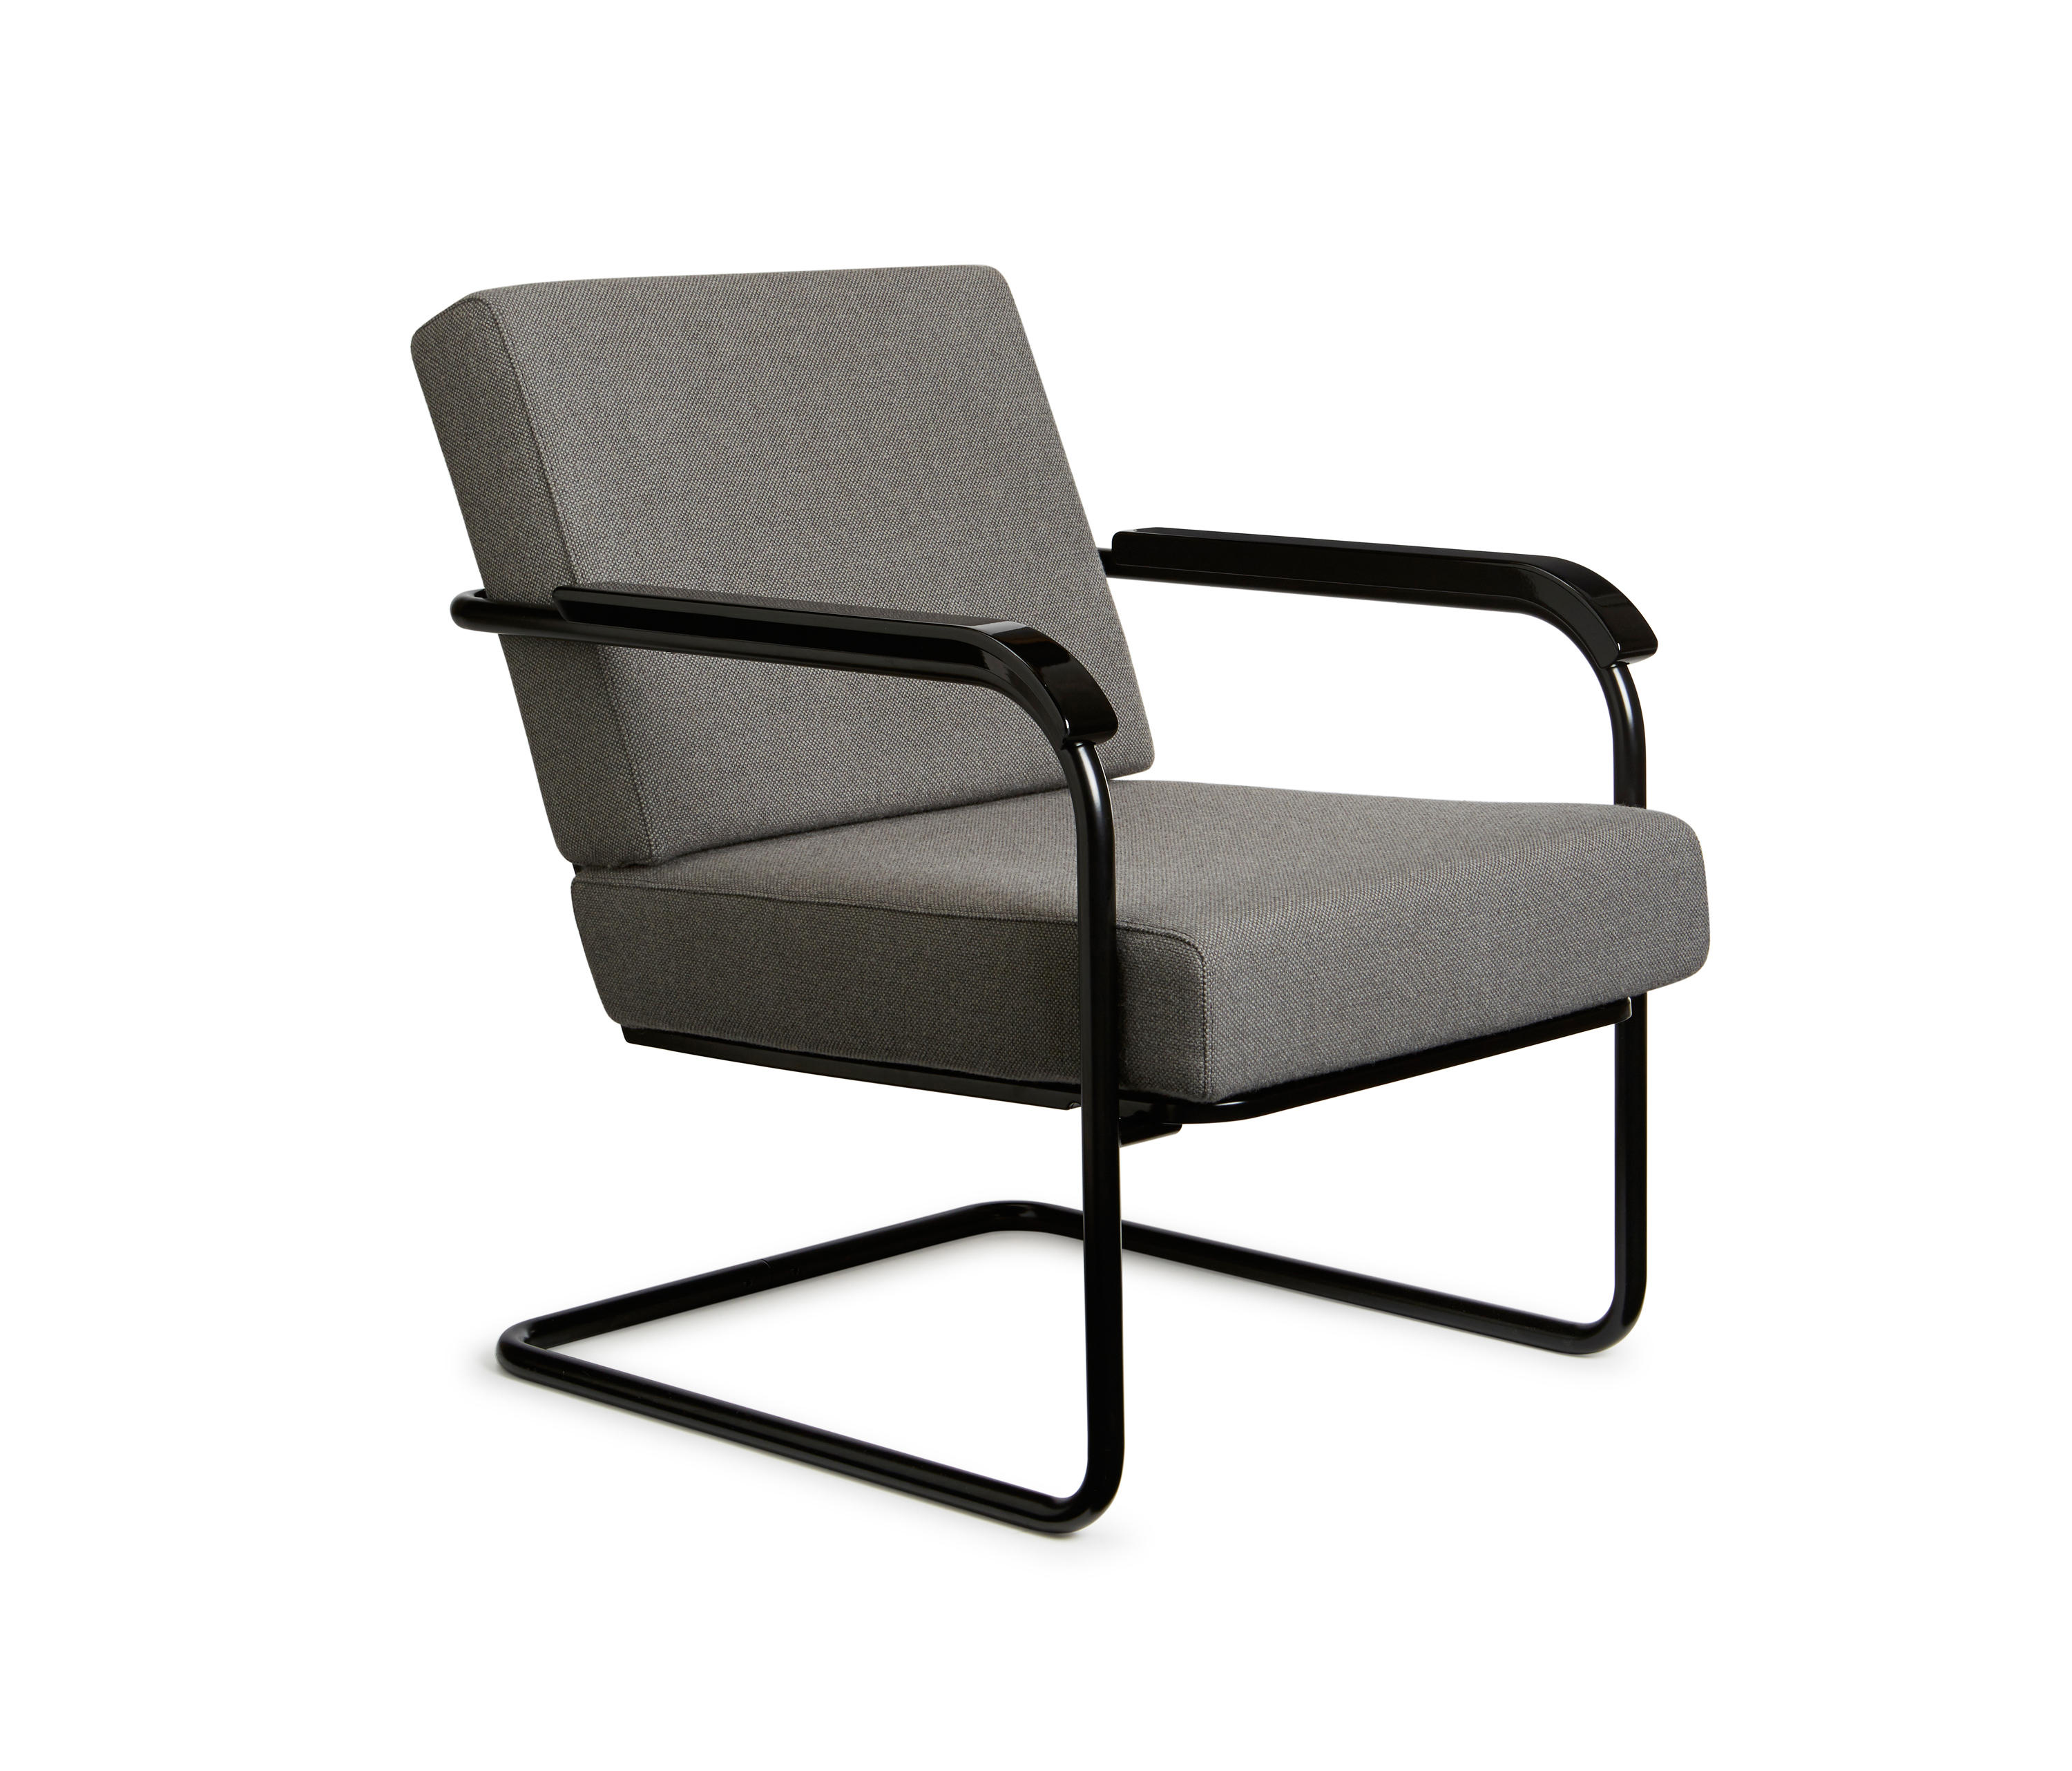 MOSER ARMCHAIR MOD. 1435 - Armchairs from Embru-Werke AG   Architonic